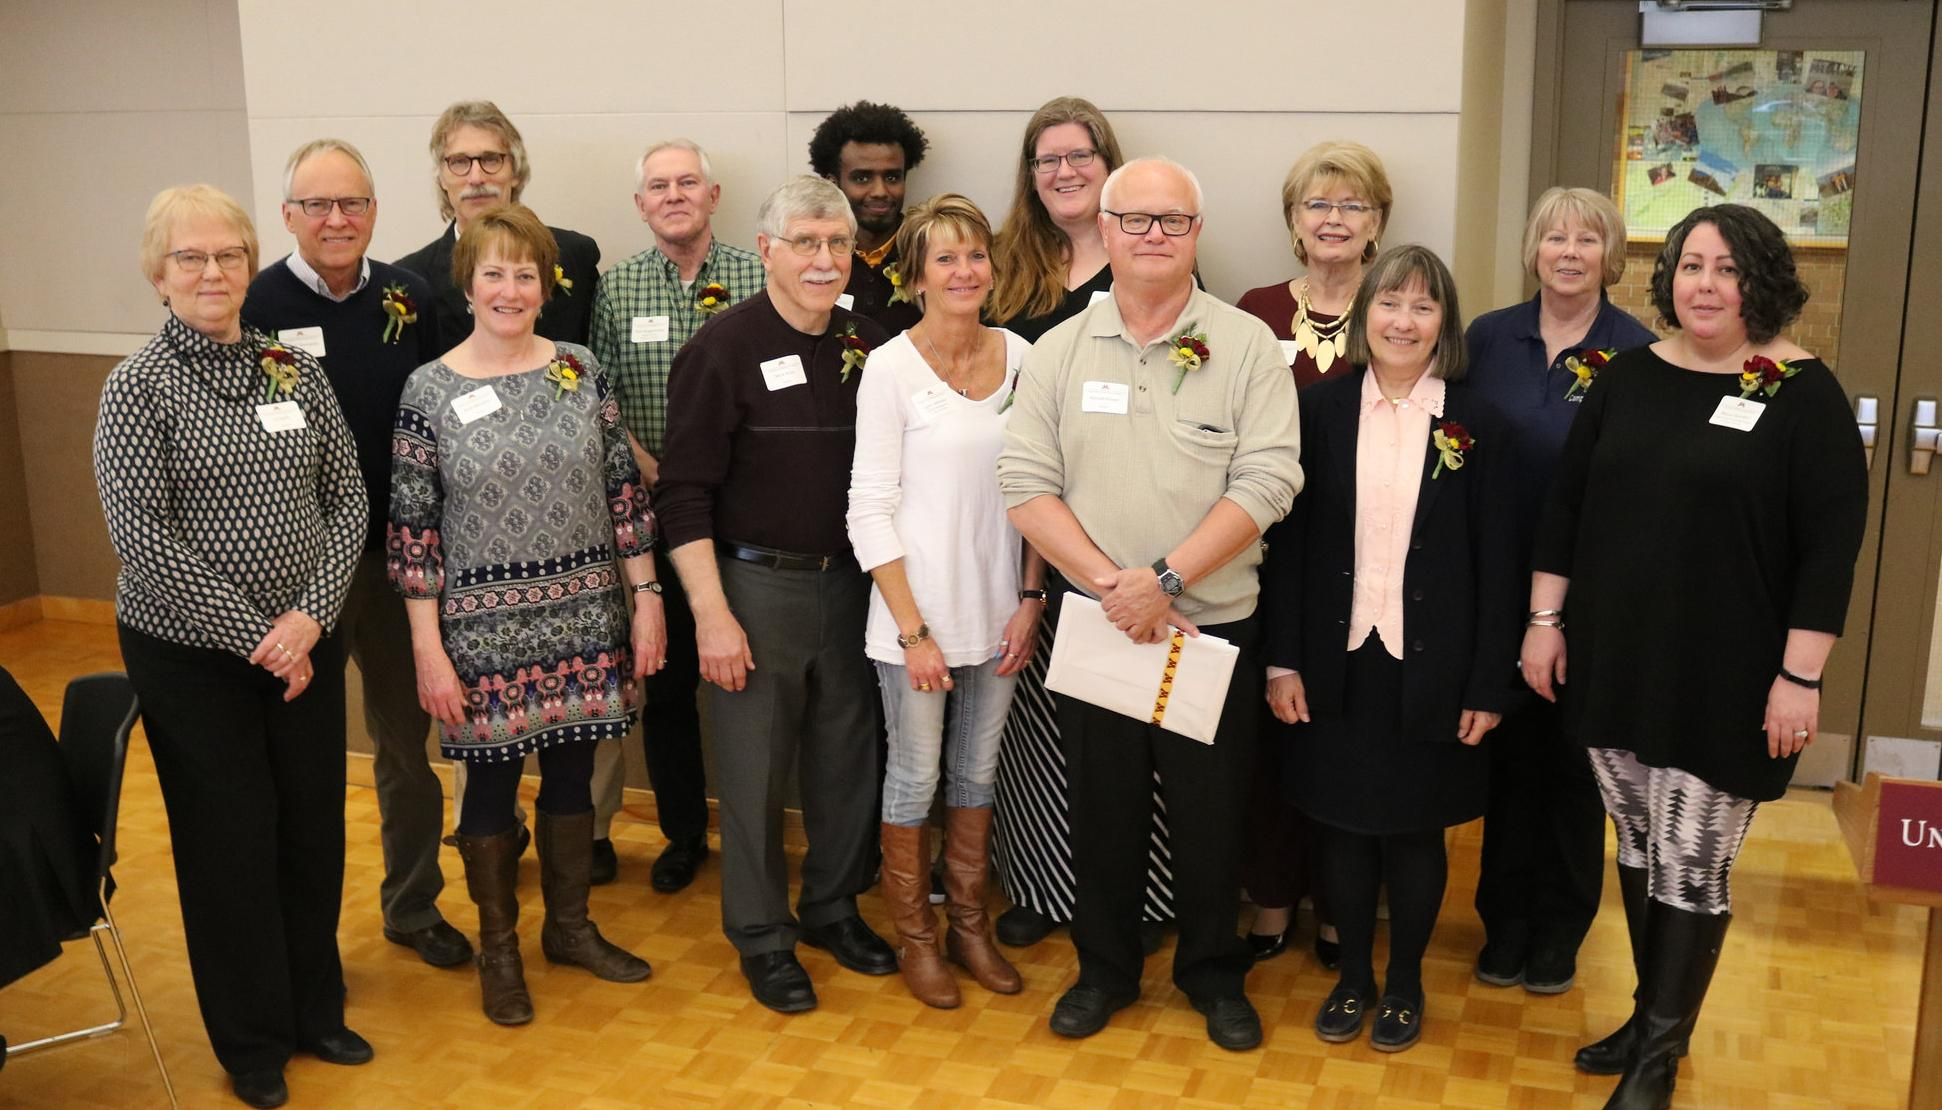 Faculty and staff award winners and retirees